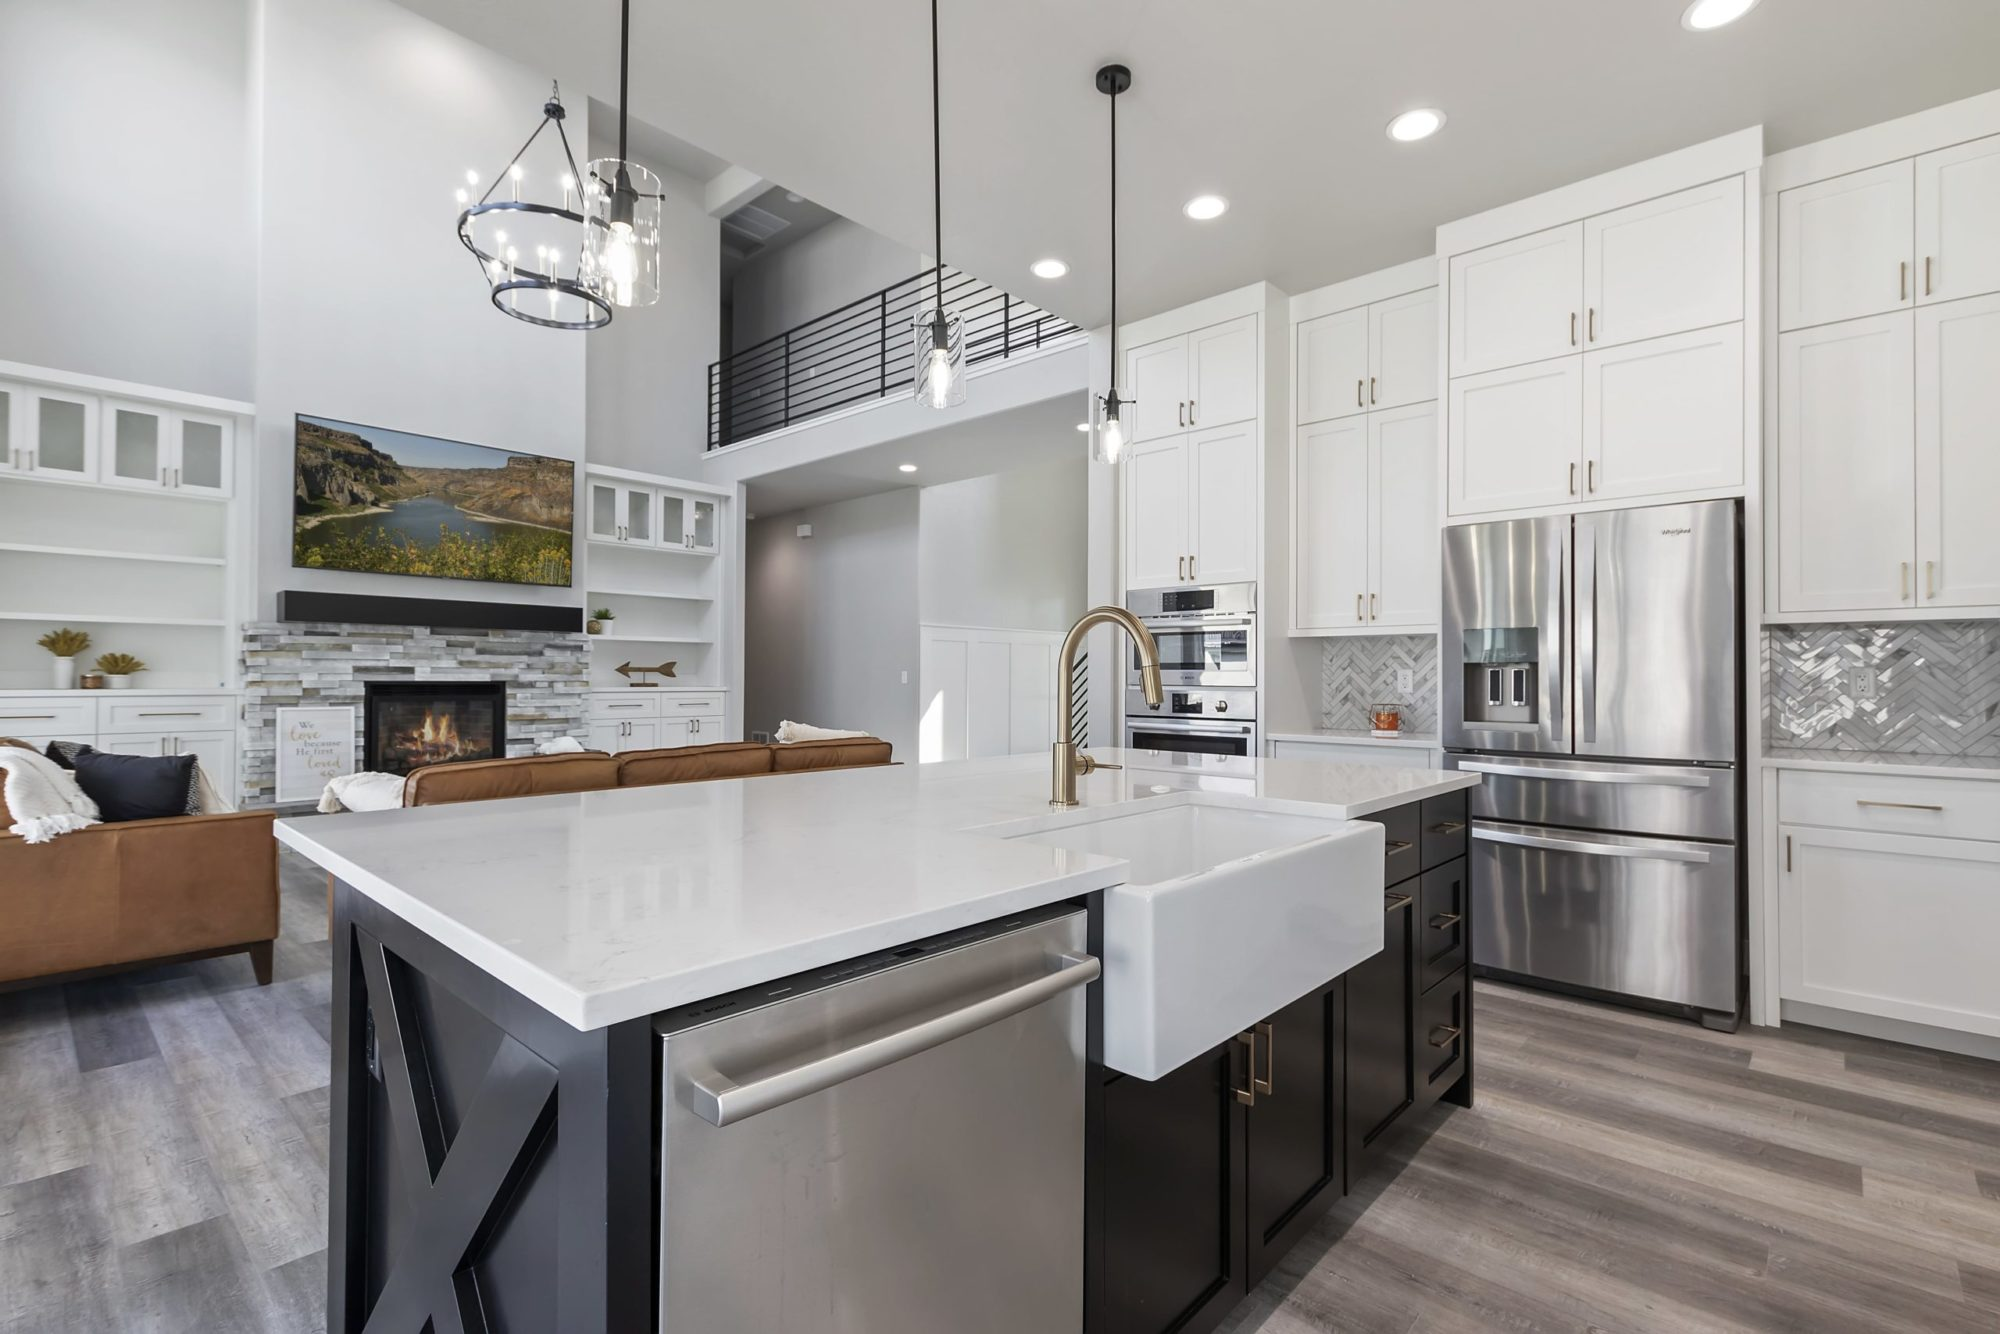 A Luxurious looking kitchen with unique cabinets and drawers throughout the area